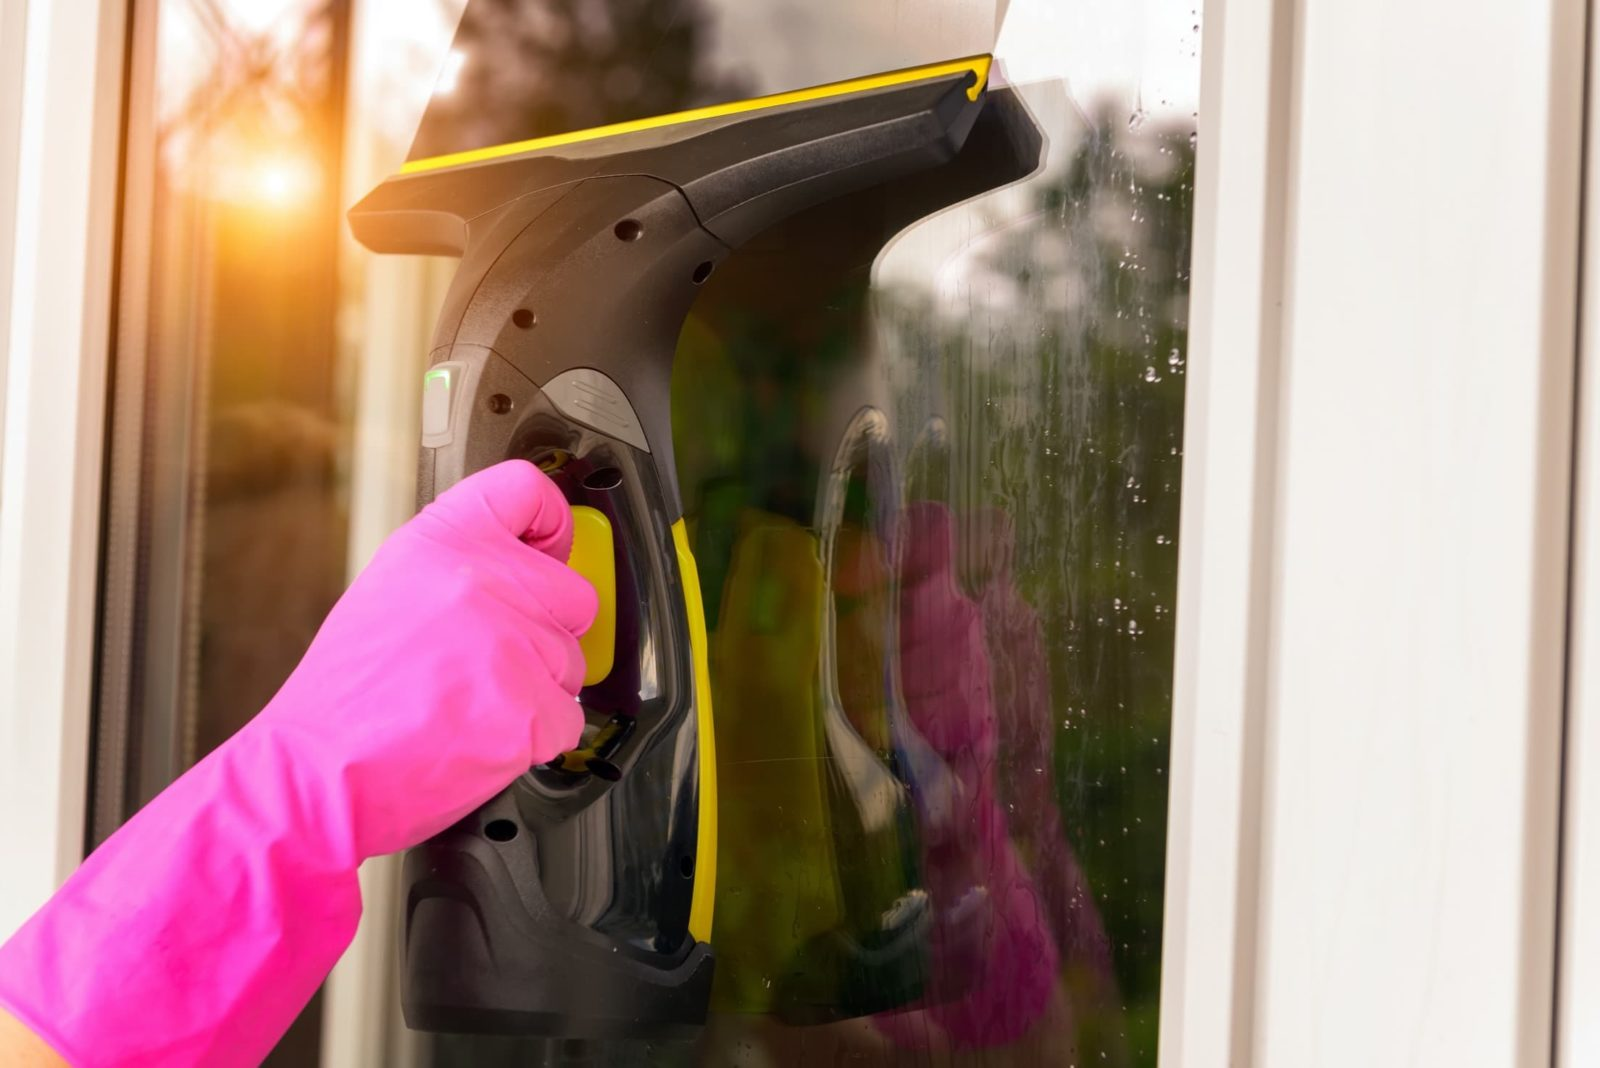 window vacuum in use with pink rubber gloves